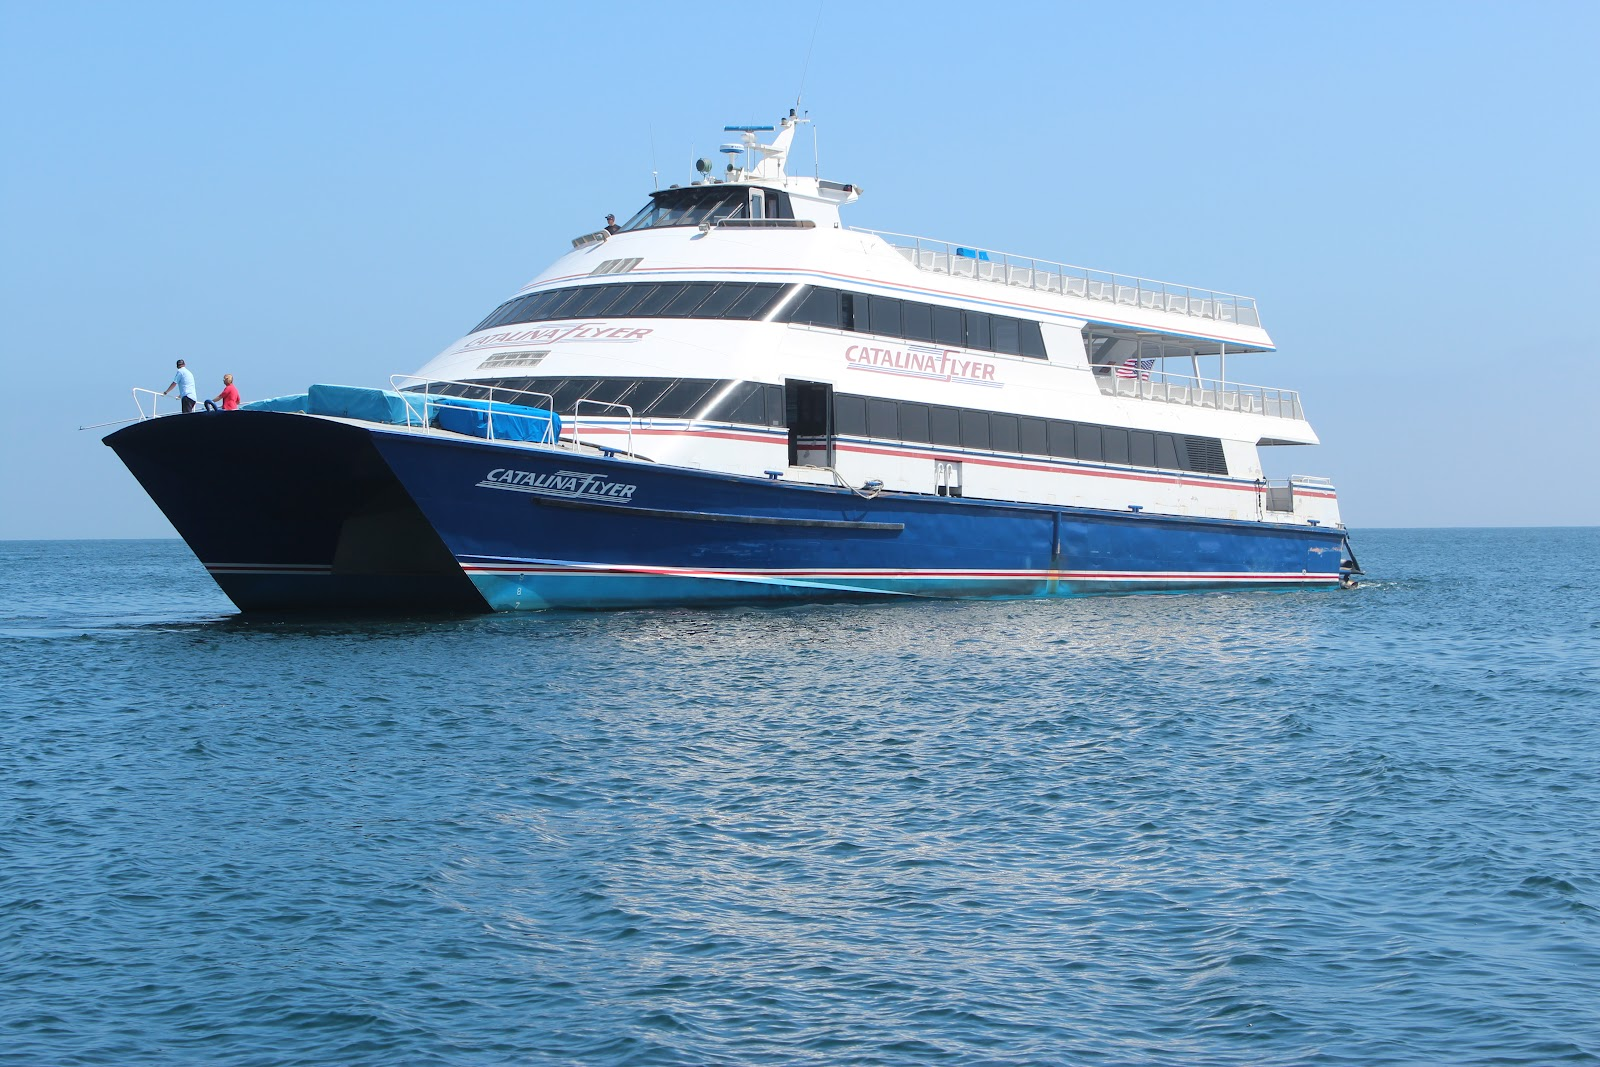 Catalina ferry coupon code